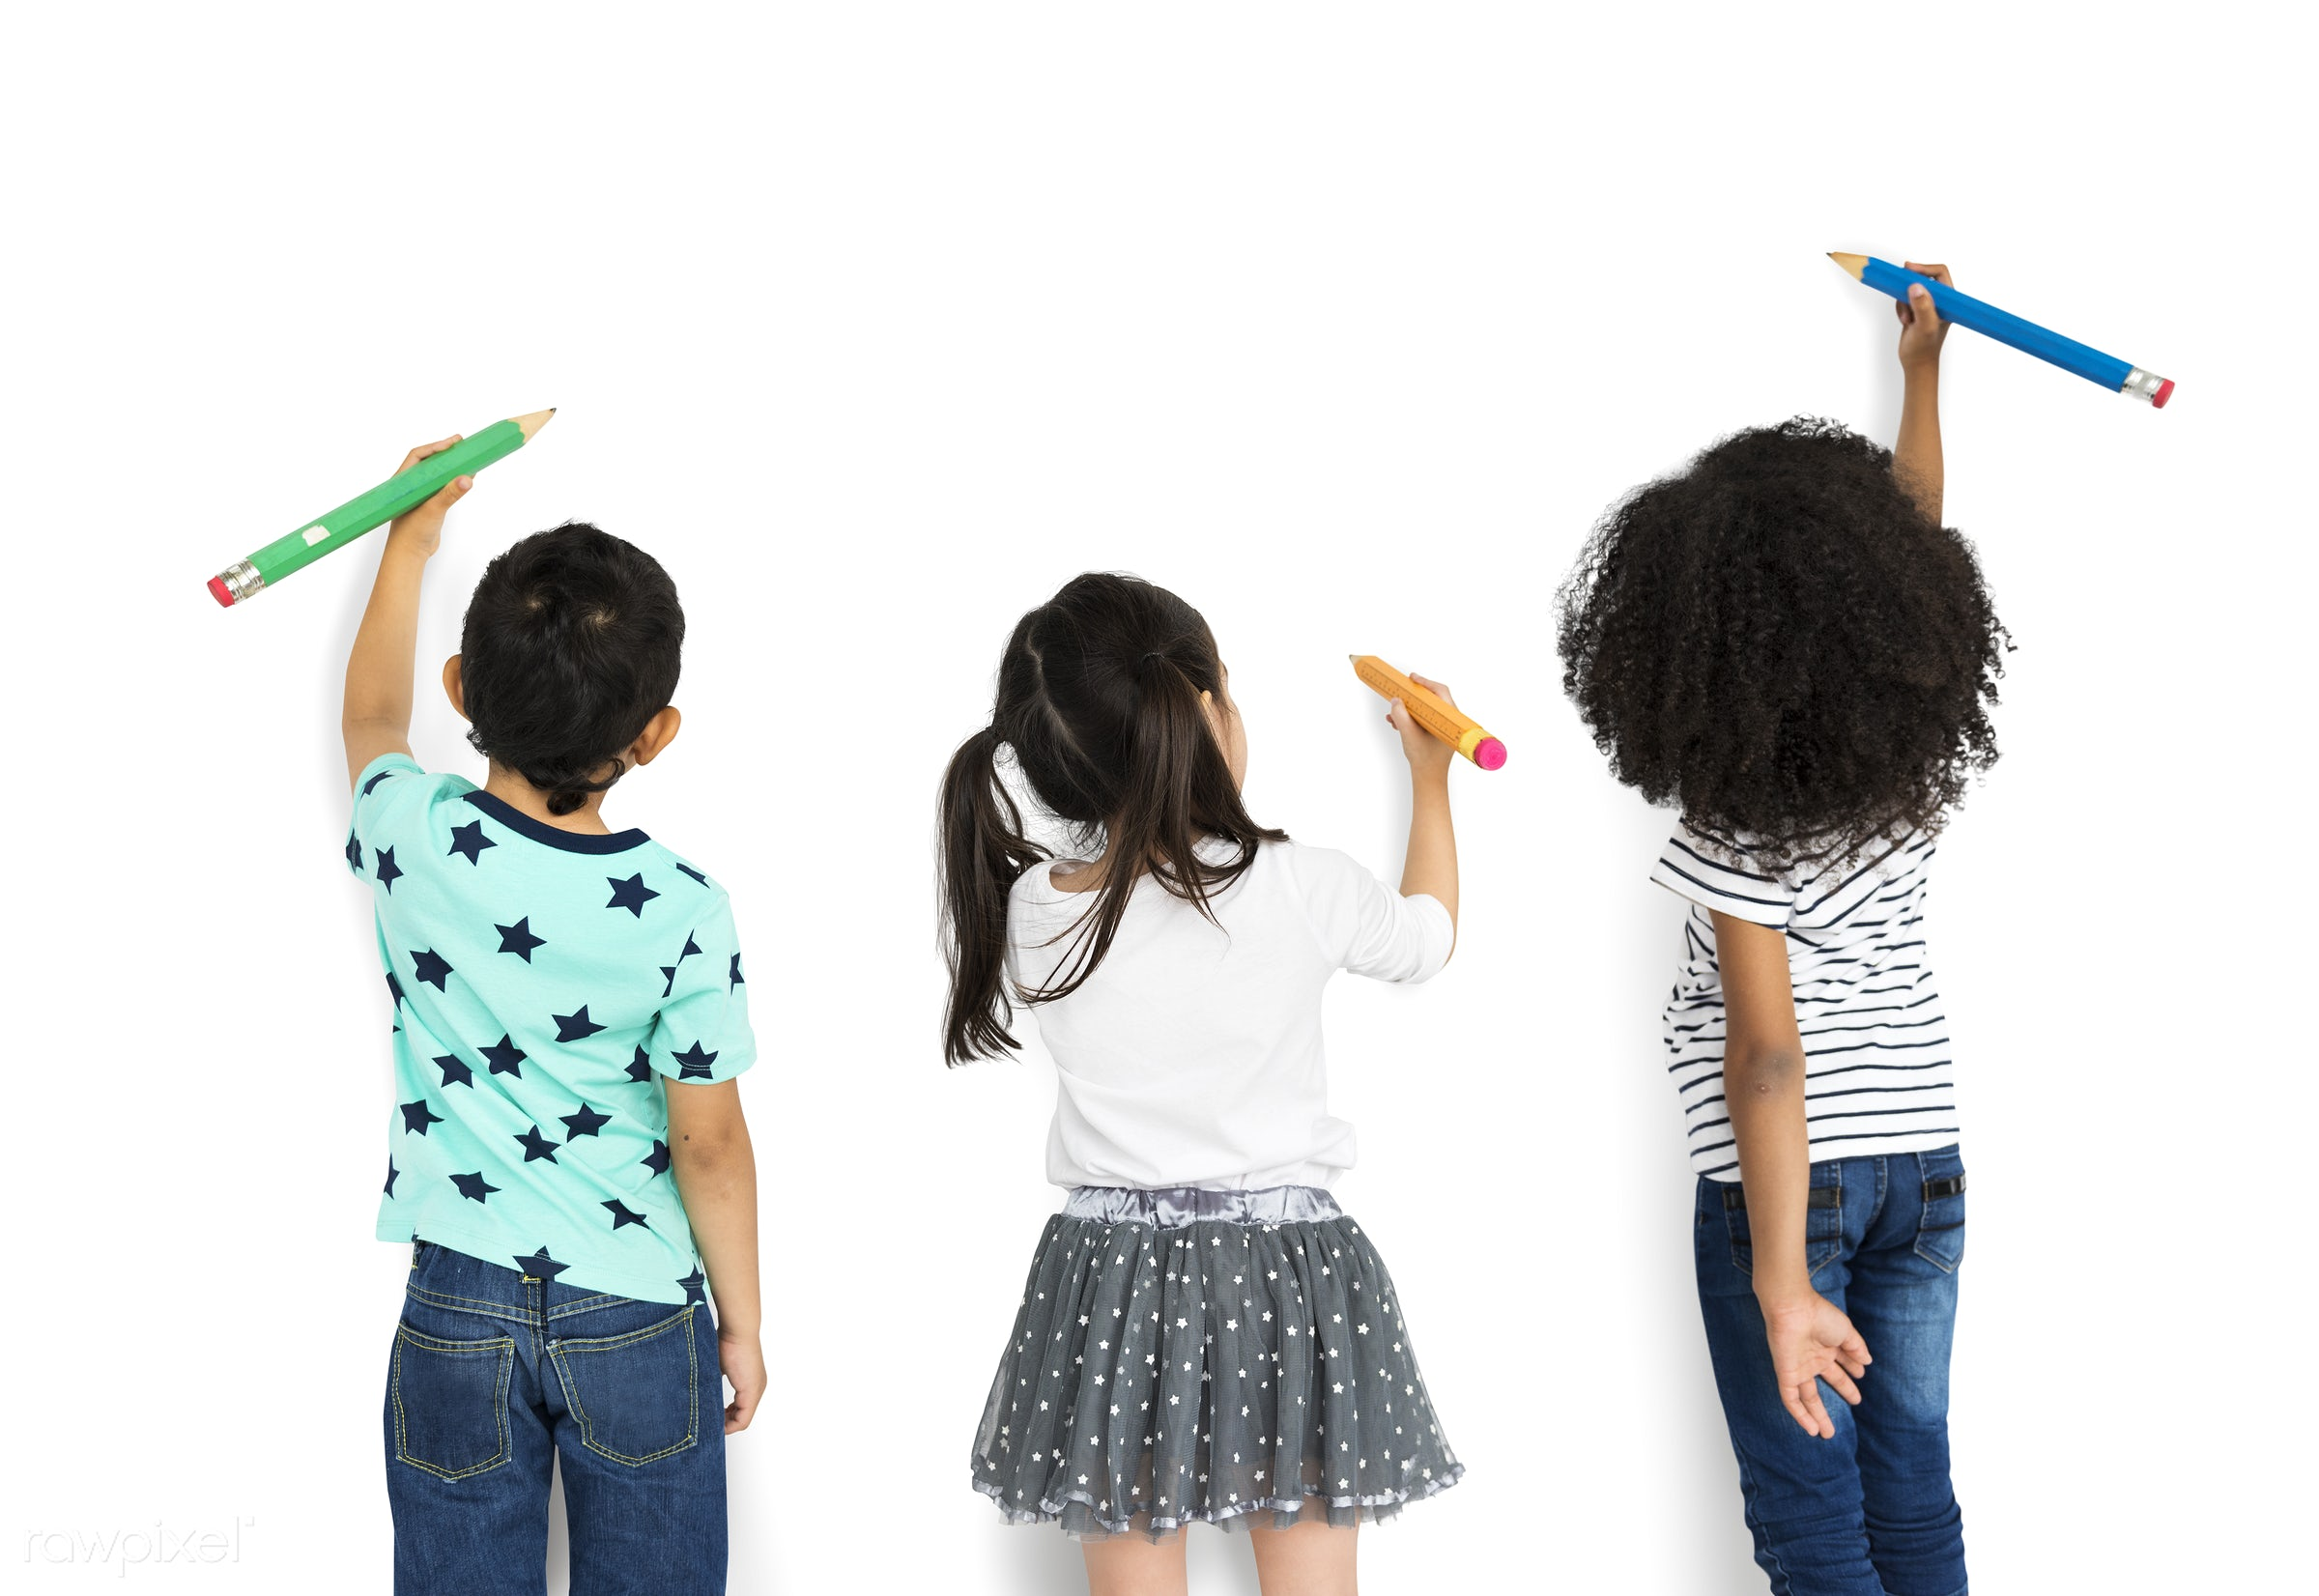 pencil, writing, cheerful, child, children, diversity, friends, friendship, group, isolated, kid, kids, people, playful,...